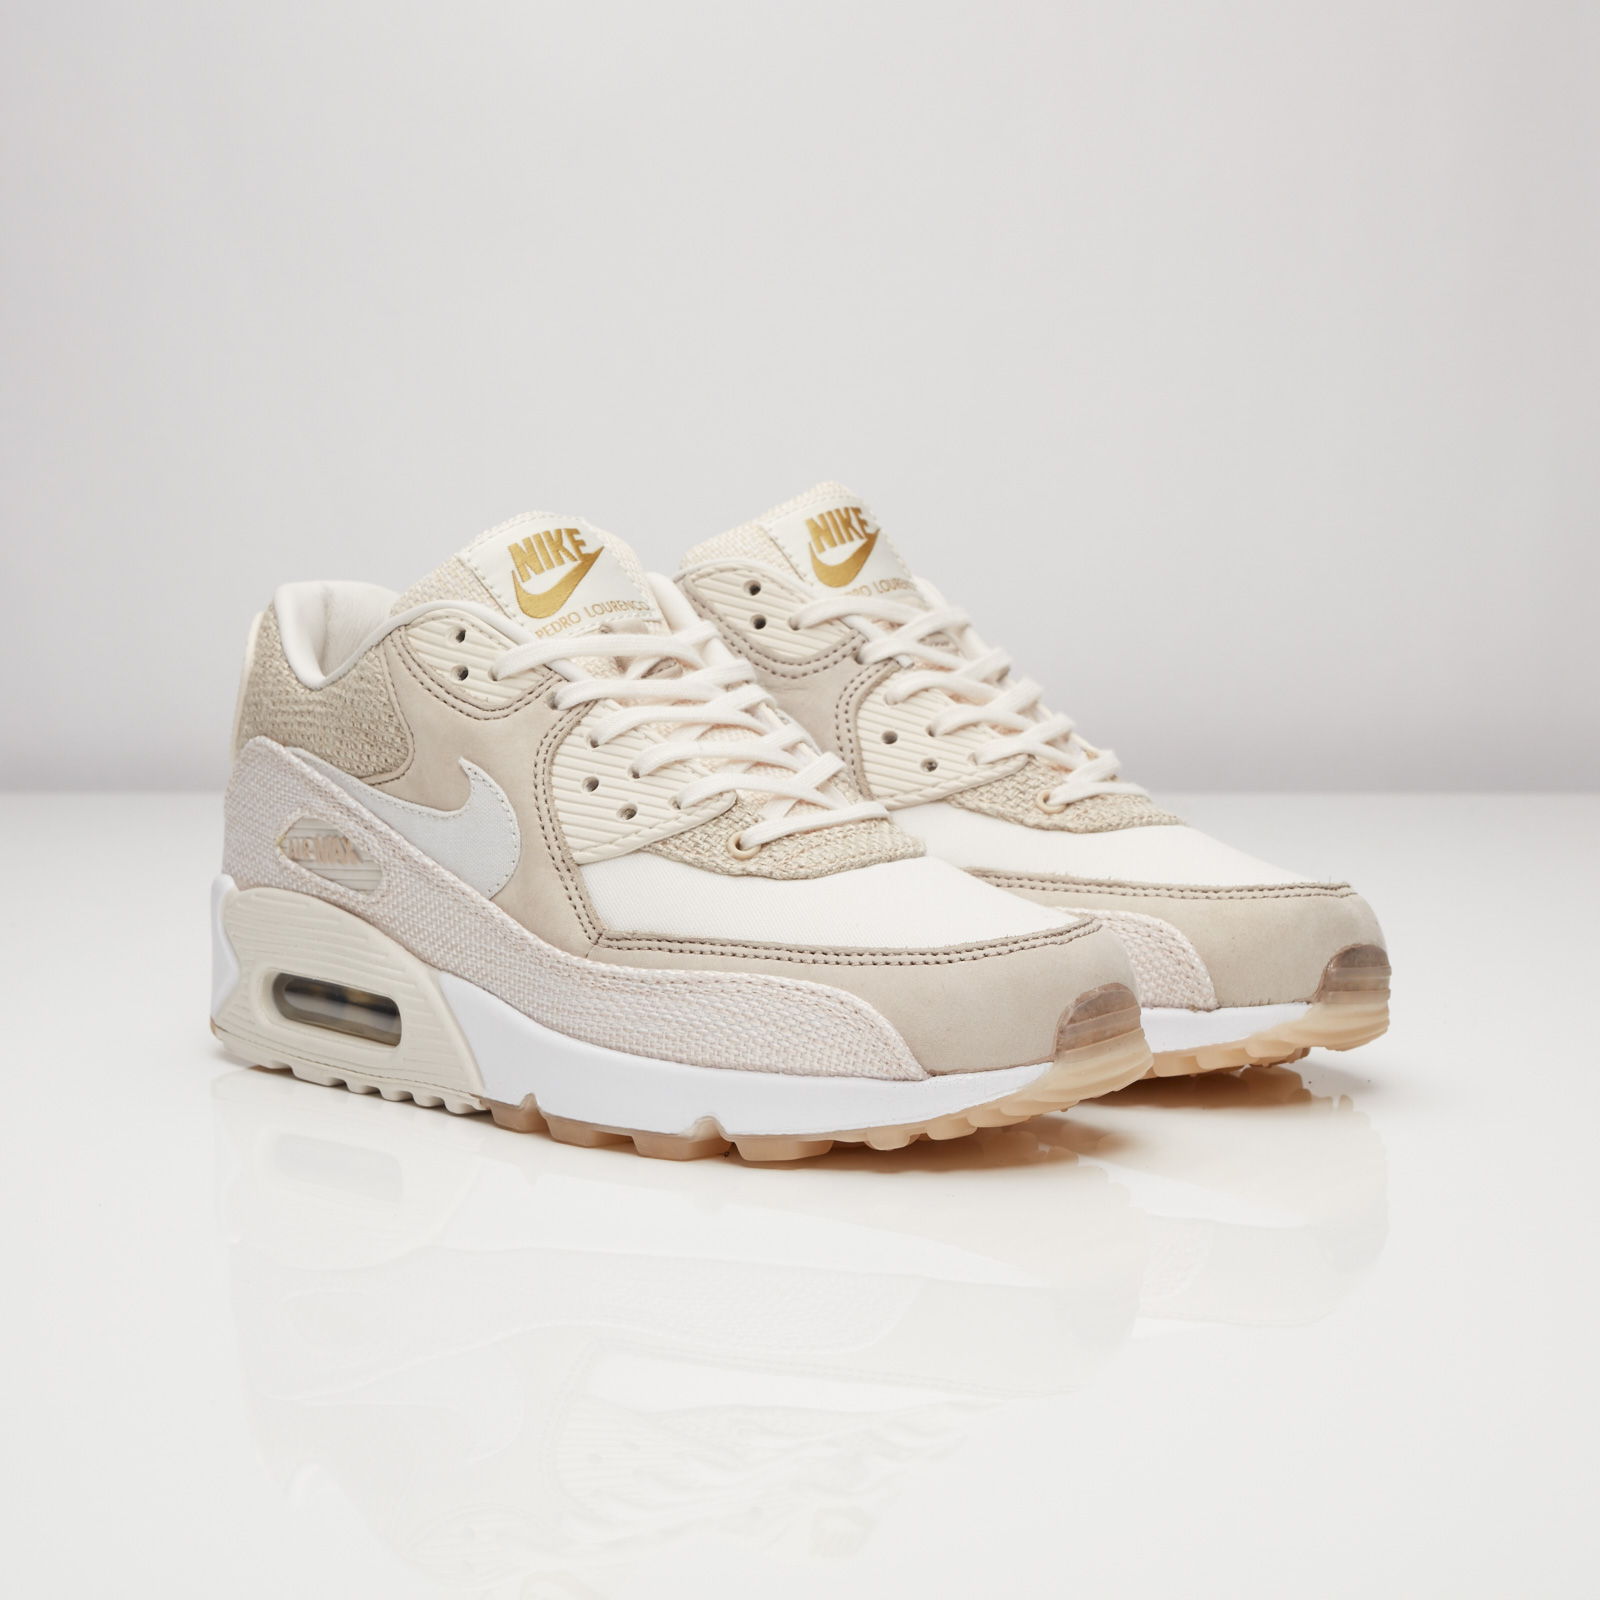 hot sale online 75567 7d276 Nike Wmns Air Max 90 Pedro Lourenco - 867116-200 - Sneakersnstuff ...